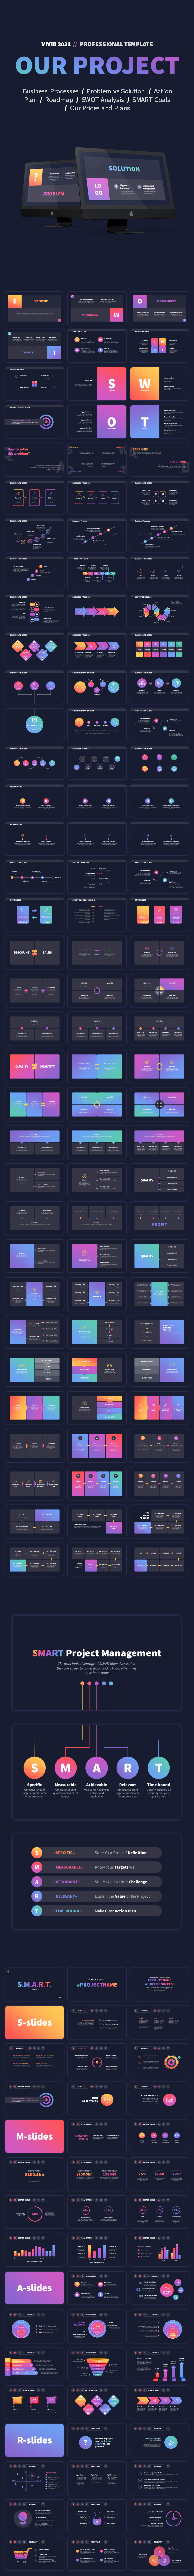 VIVID 2021 - Professional PowerPoint Presentation Template - 16